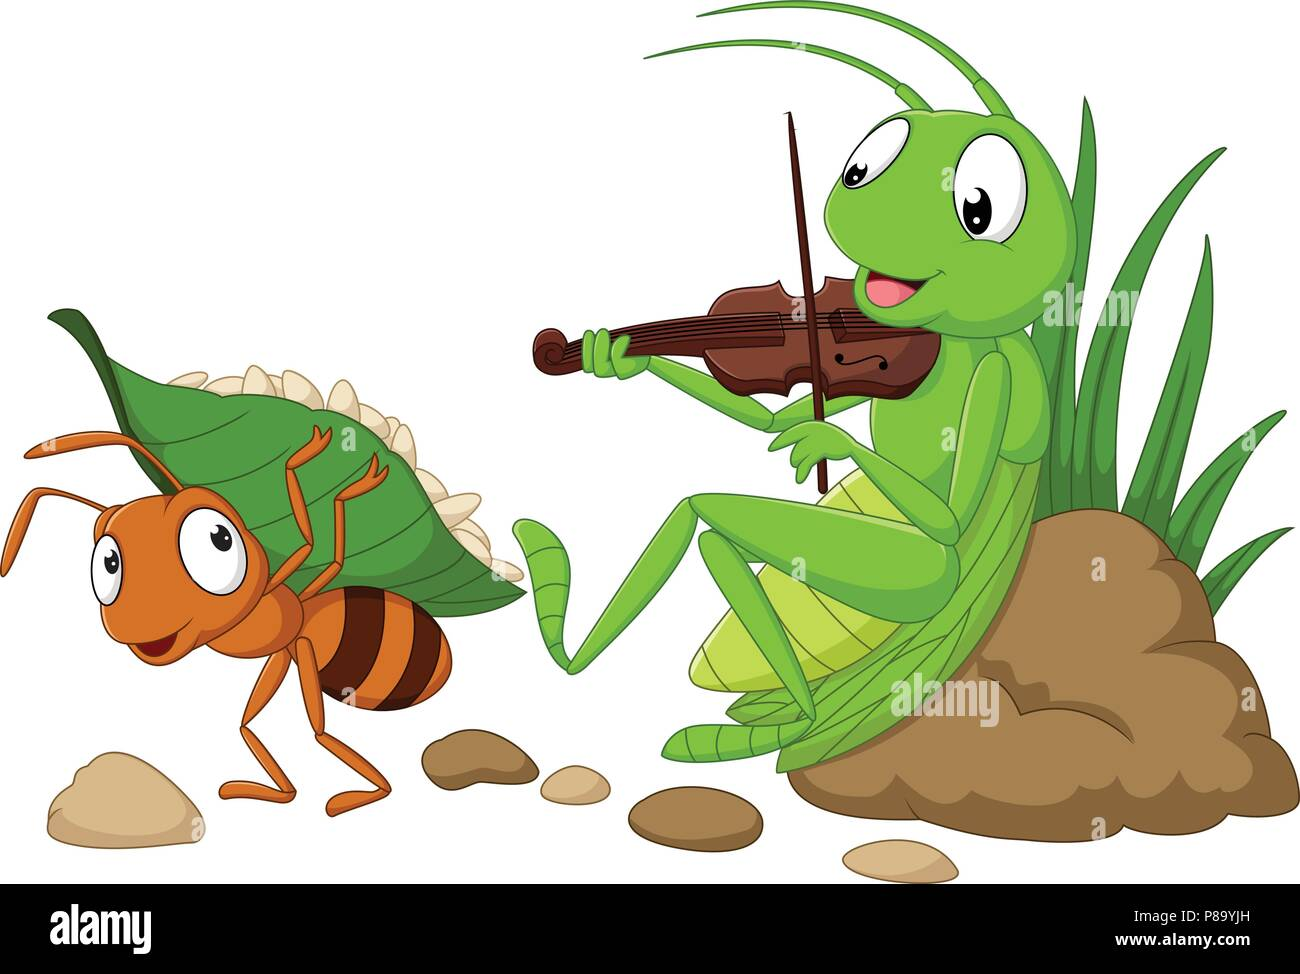 Cartoon The Ant And The Grasshopper Stock Vector Art